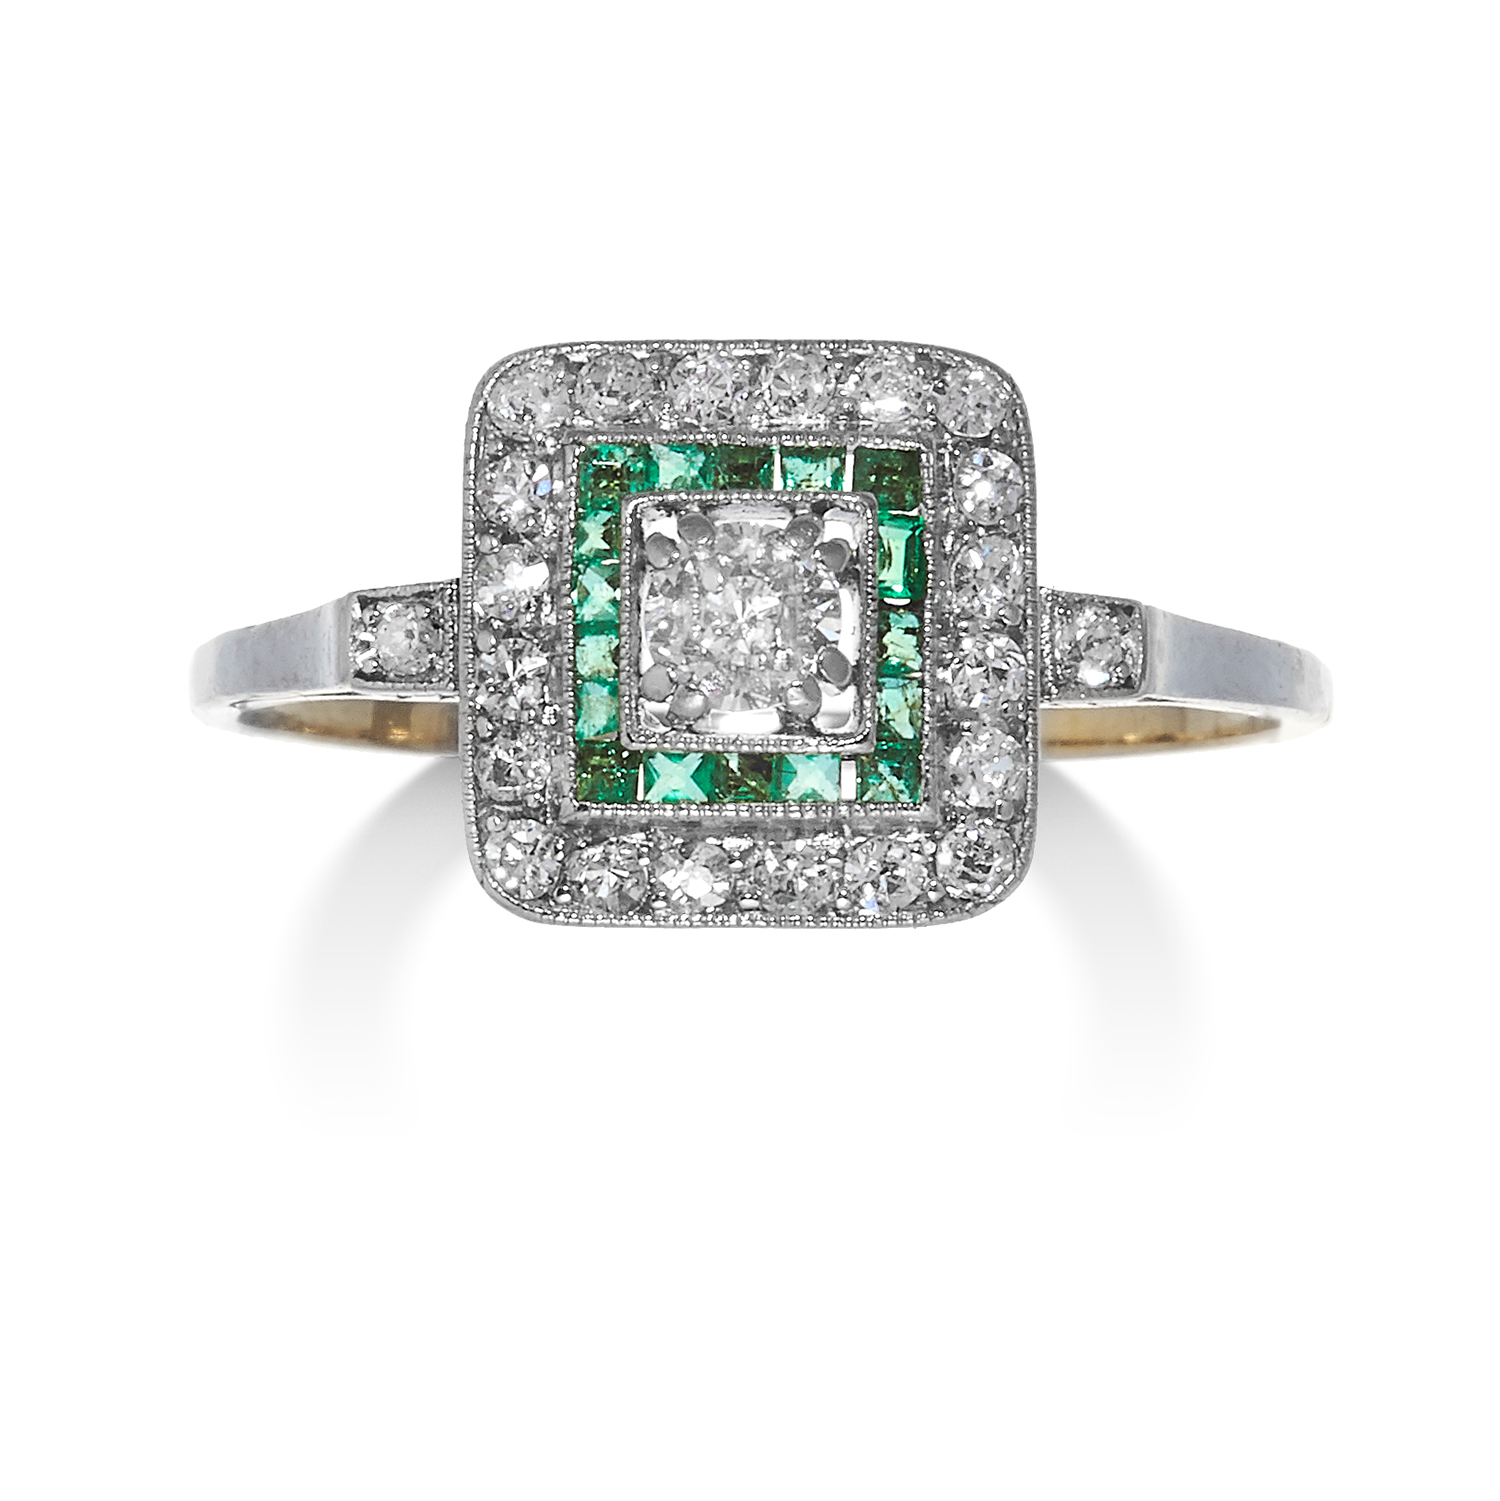 Los 7 - AN ART DECO DIAMOND AND EMERALD RING in high carat yellow gold and platinum, the old cut diamond